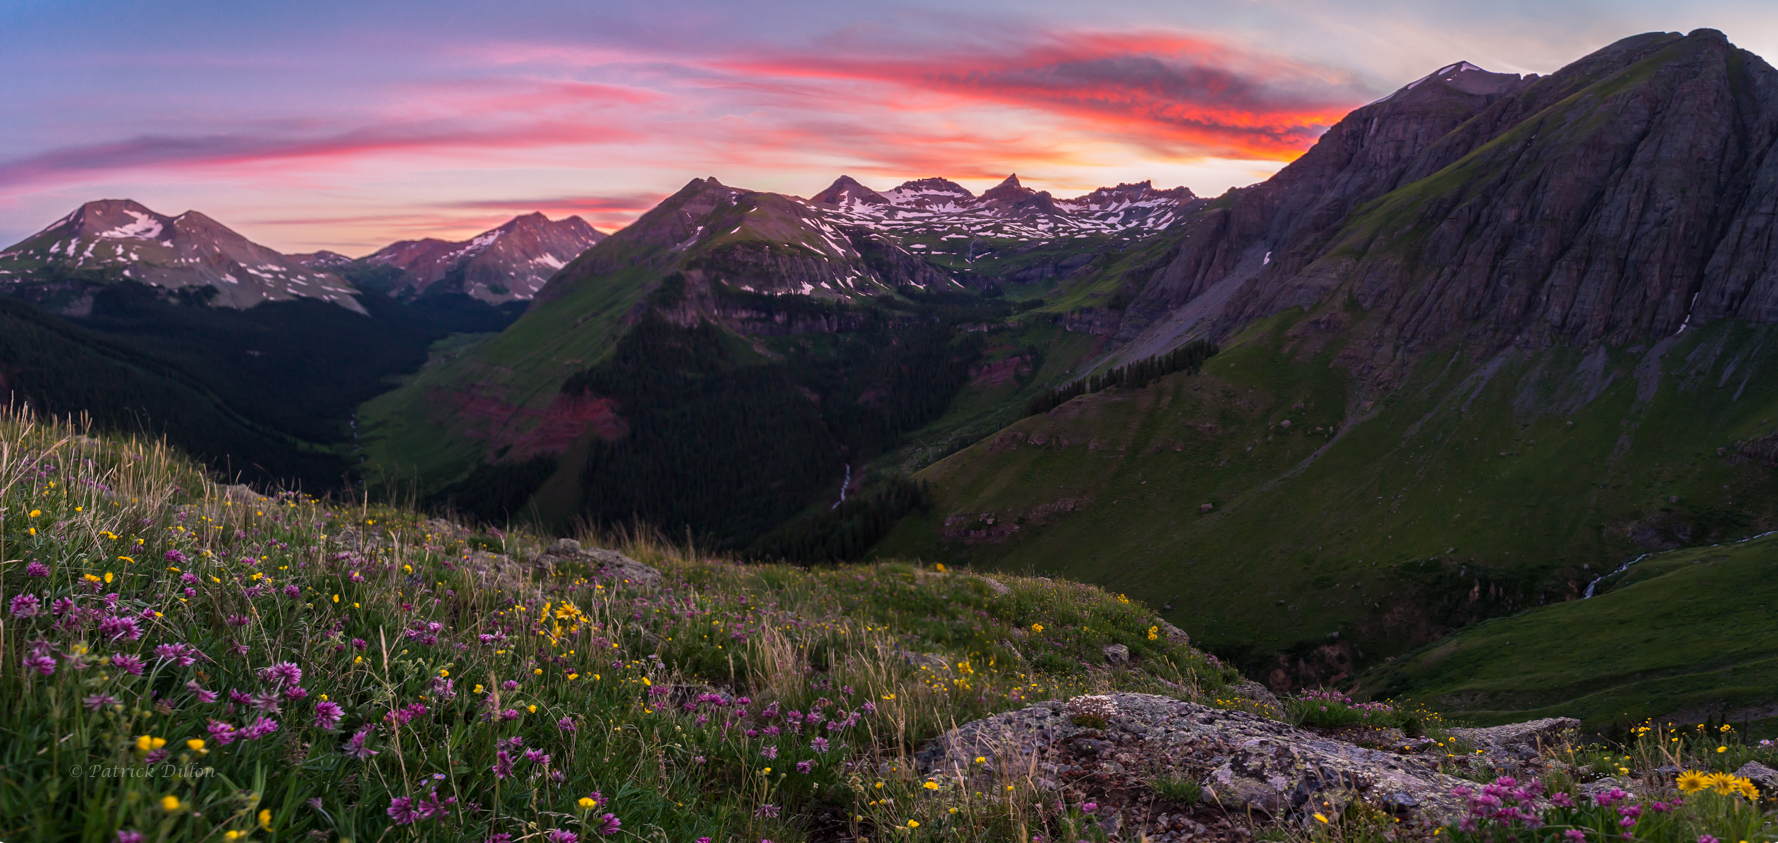 Distant Ice Lake Basin Sunset Pano email-2